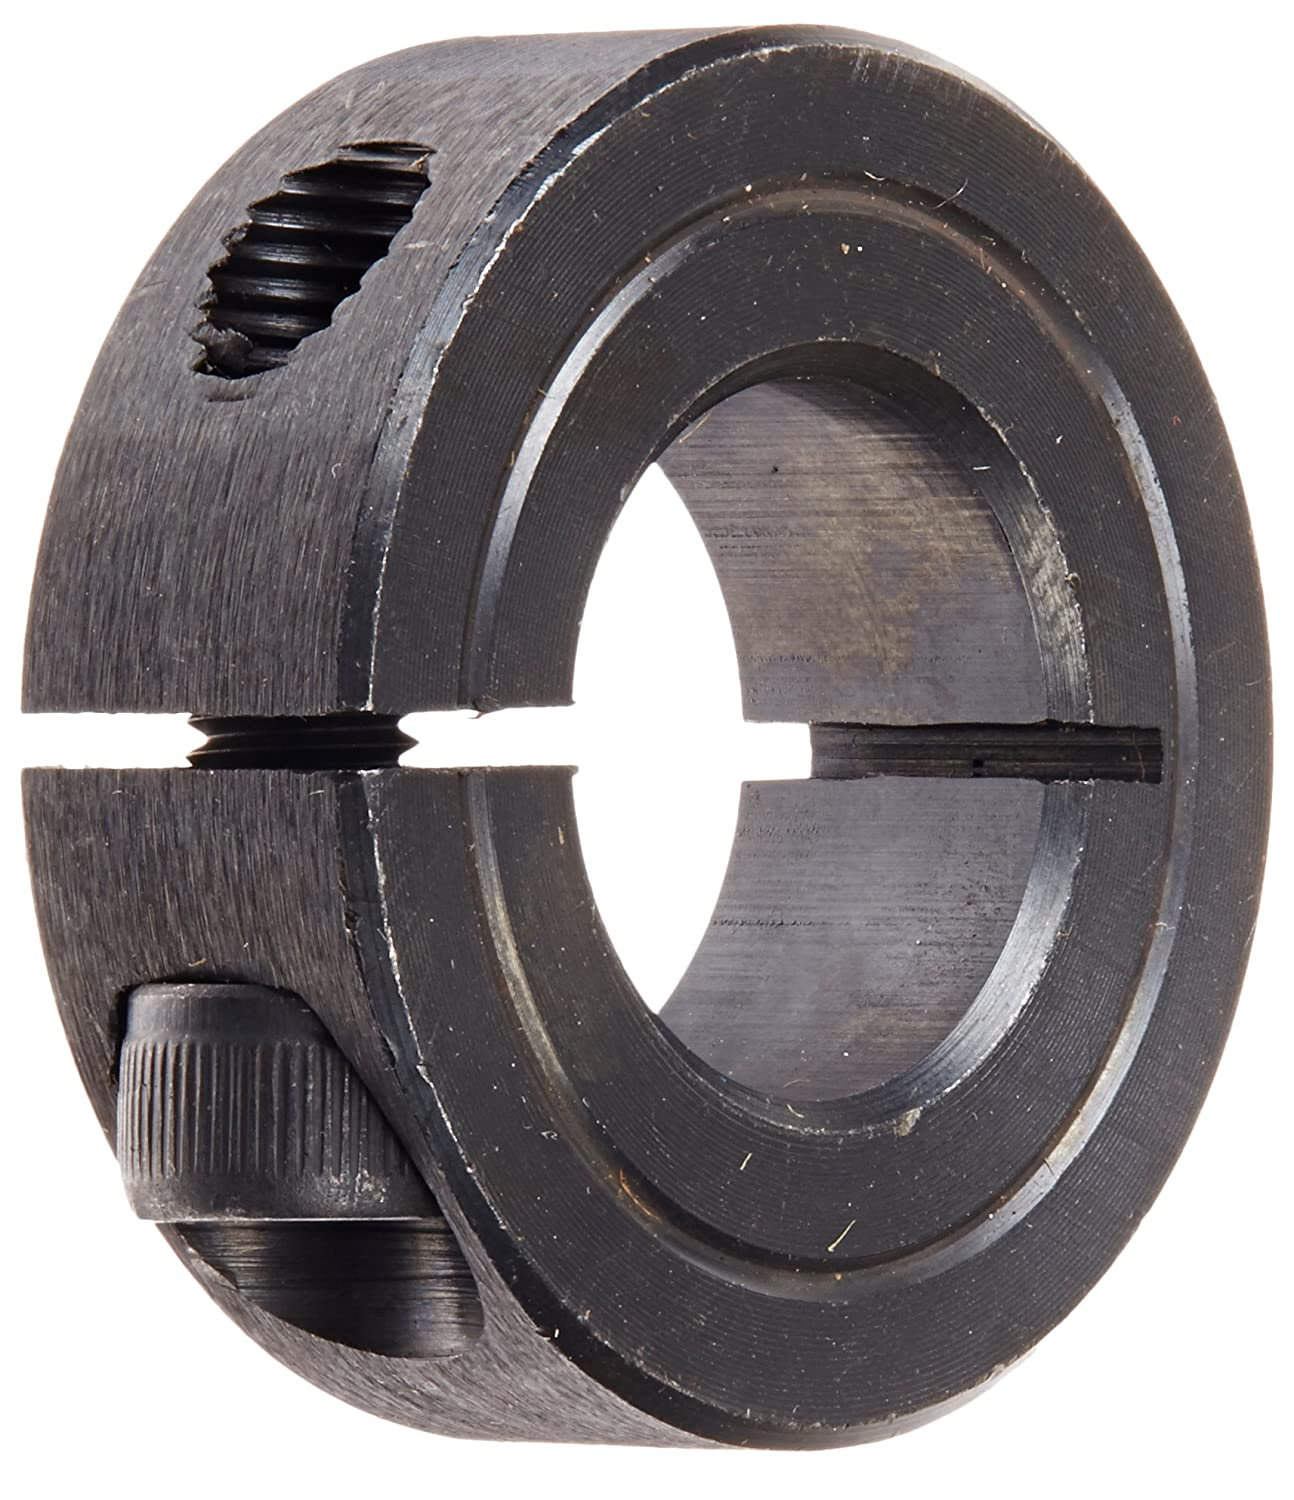 Pack of 5 1//2 Width Climax Metals 1C-075X5 Mild Steel Black Oxide Plating Clamping Collar 1//4-28 x 5//8 Clamp Screw 1 1//2 OD 3//4 Bore